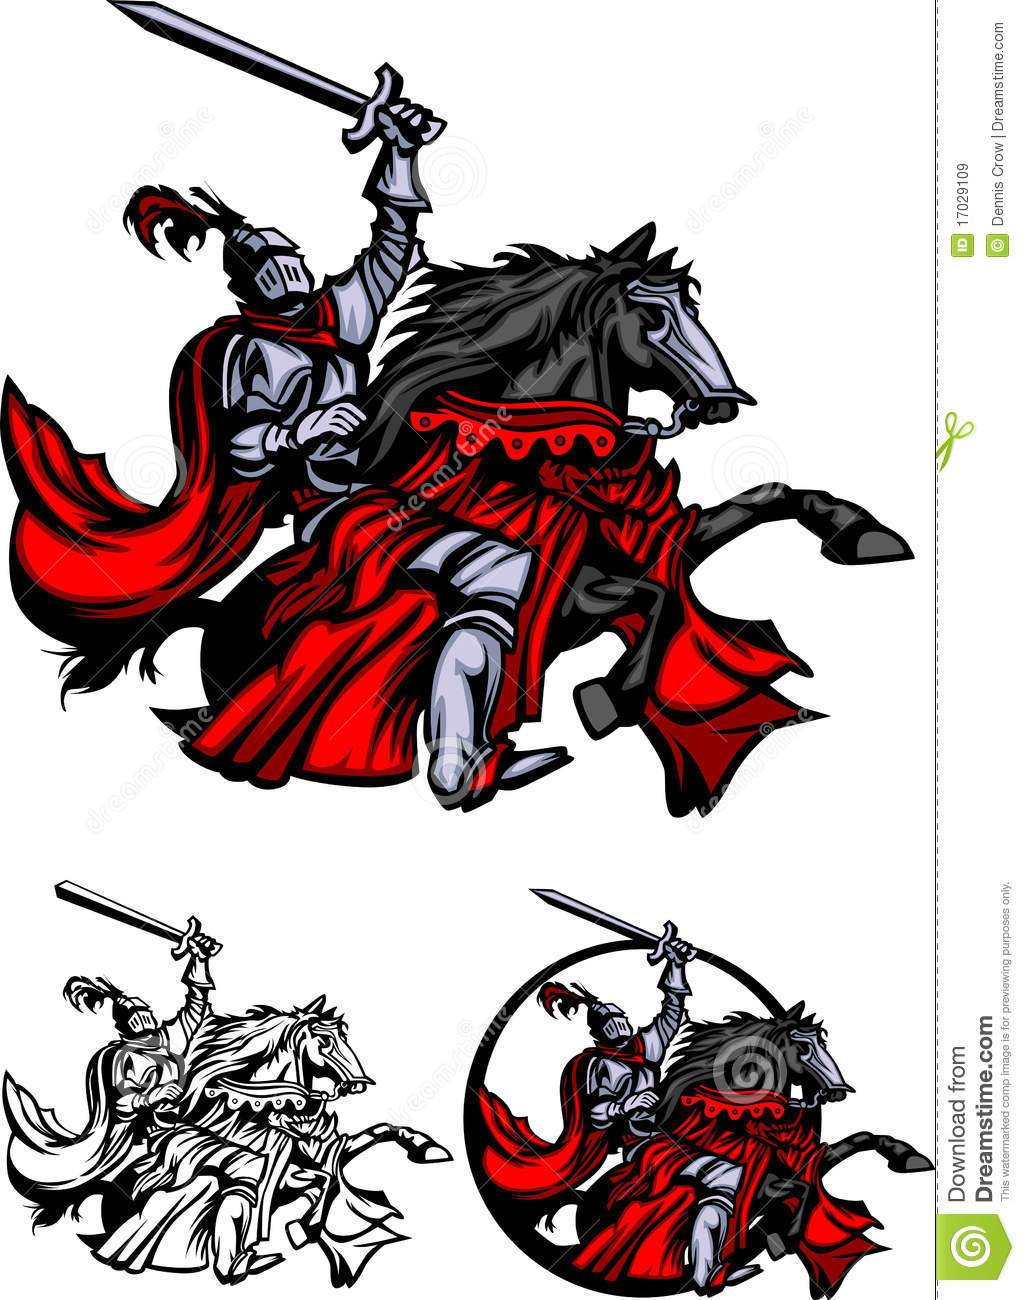 Paladin clipart graphic black and white library Paladin clipart 8 » Clipart Portal graphic black and white library